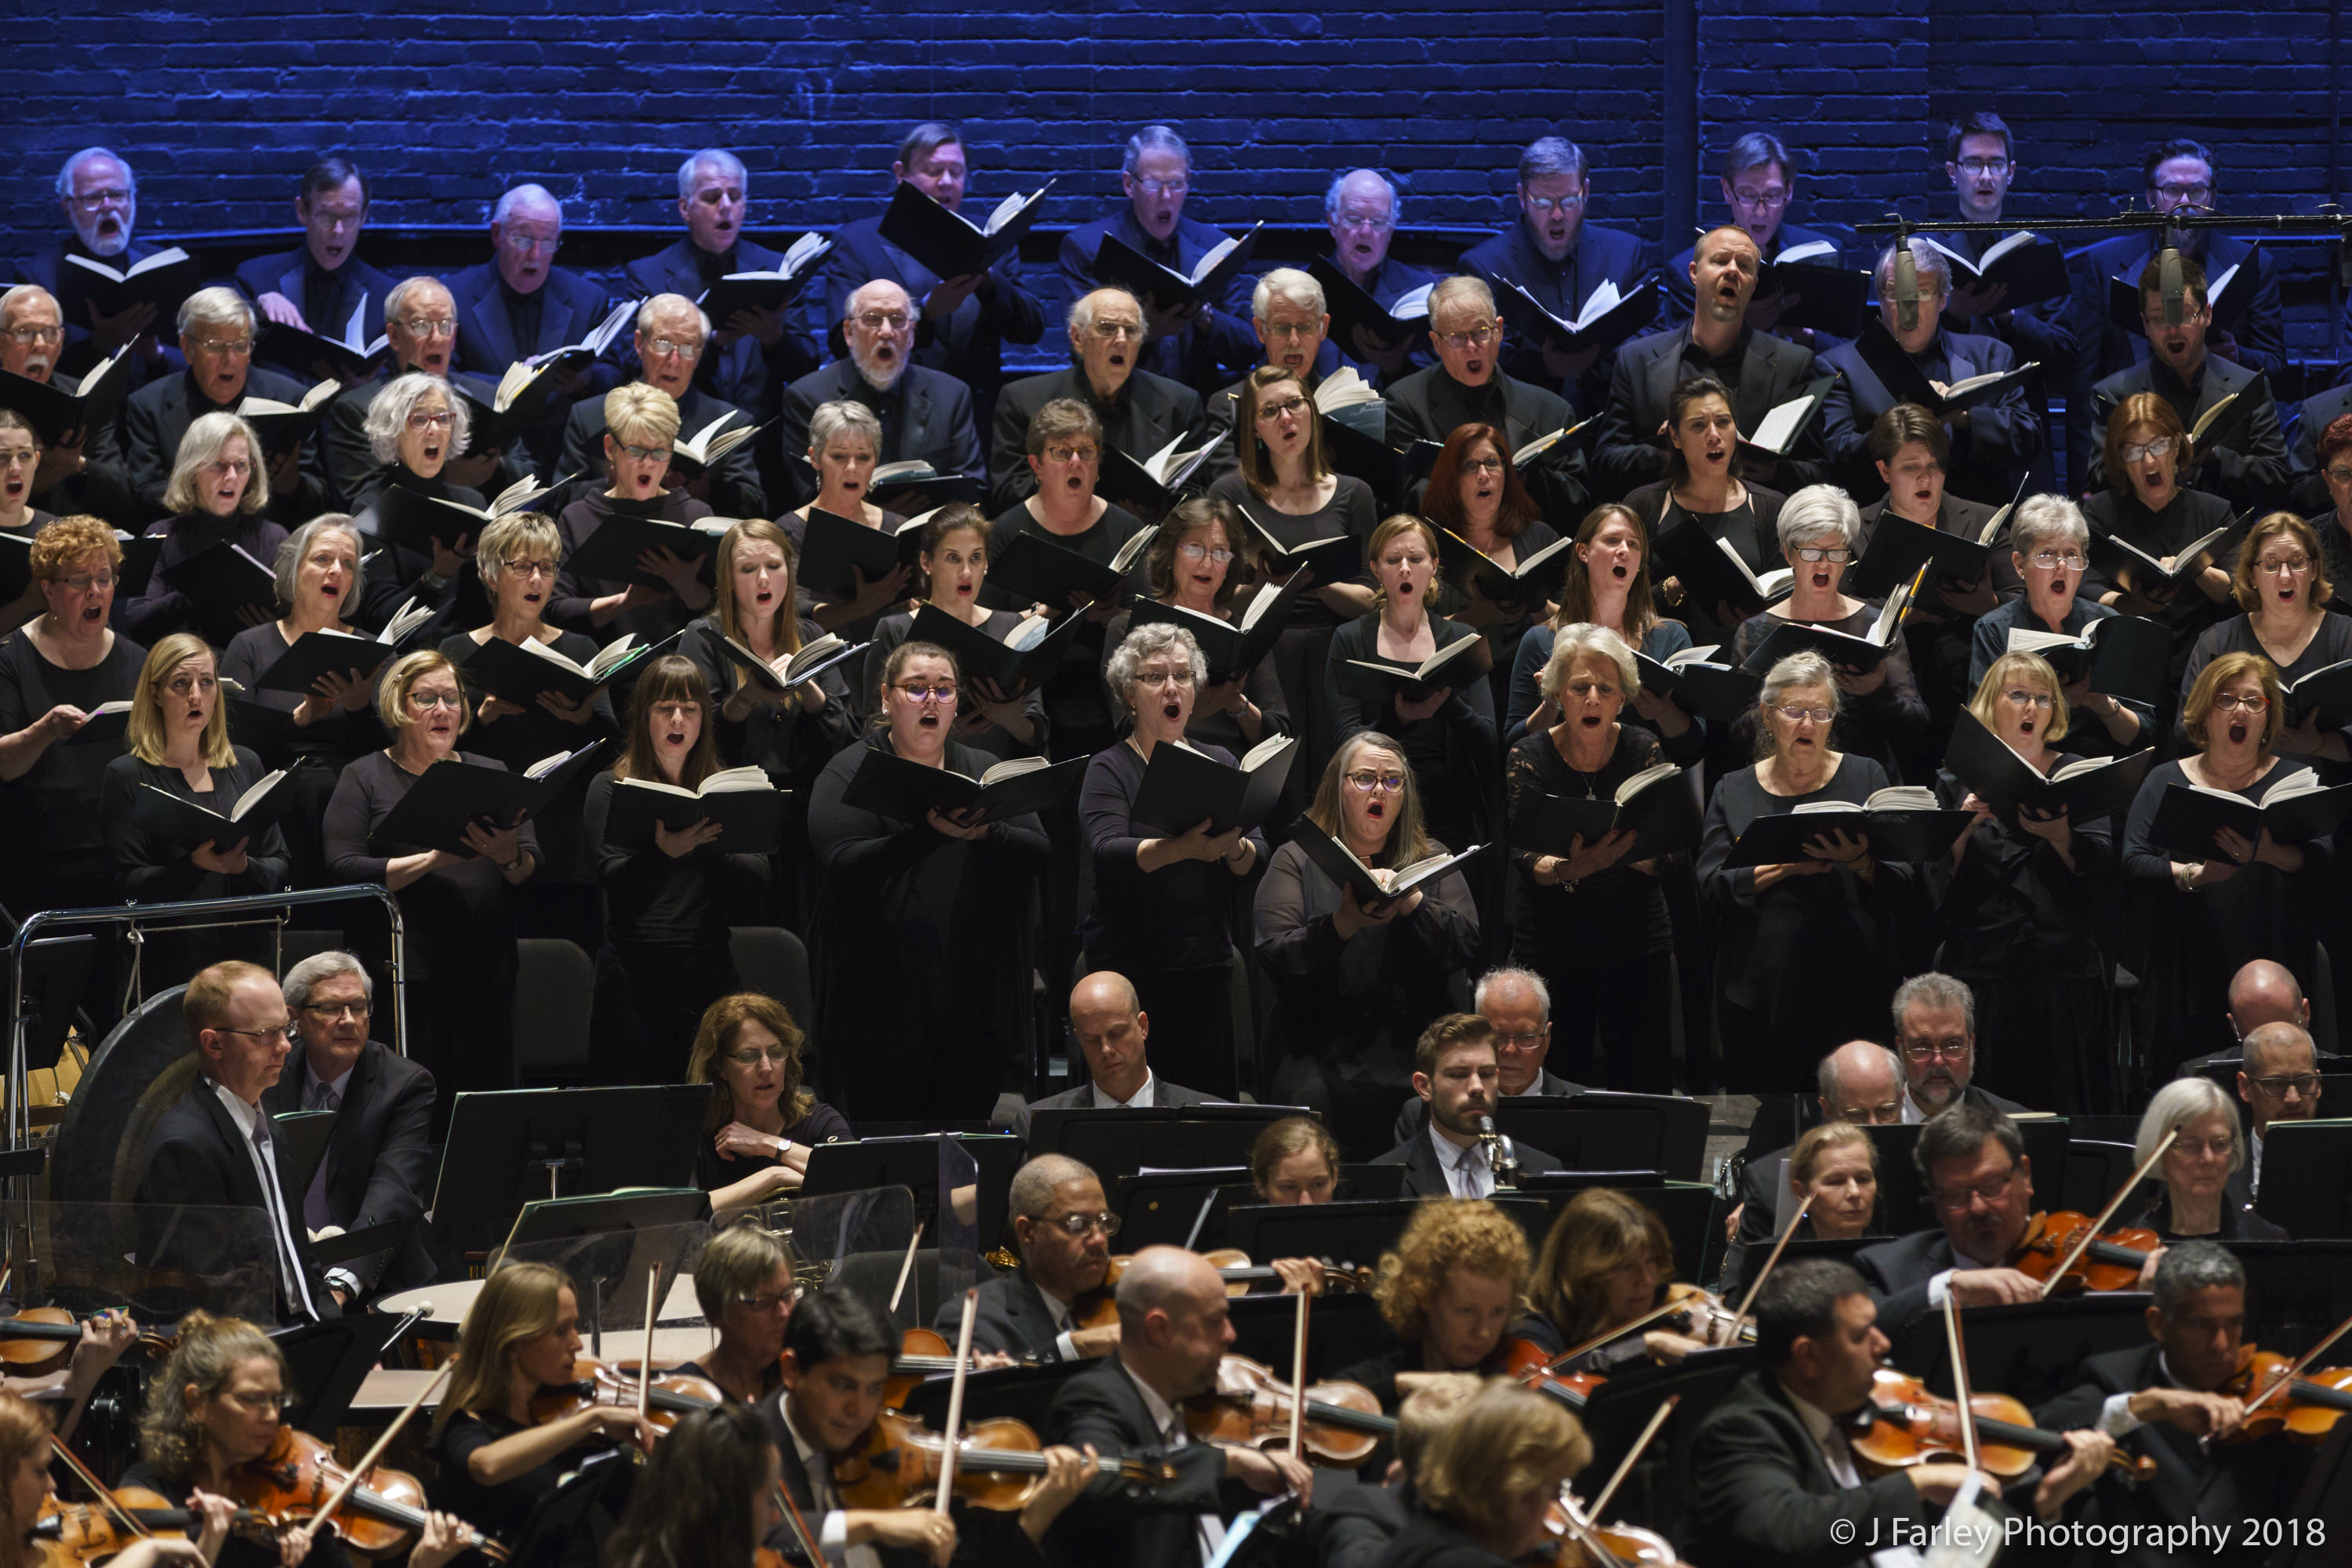 The Symphony and Chorus